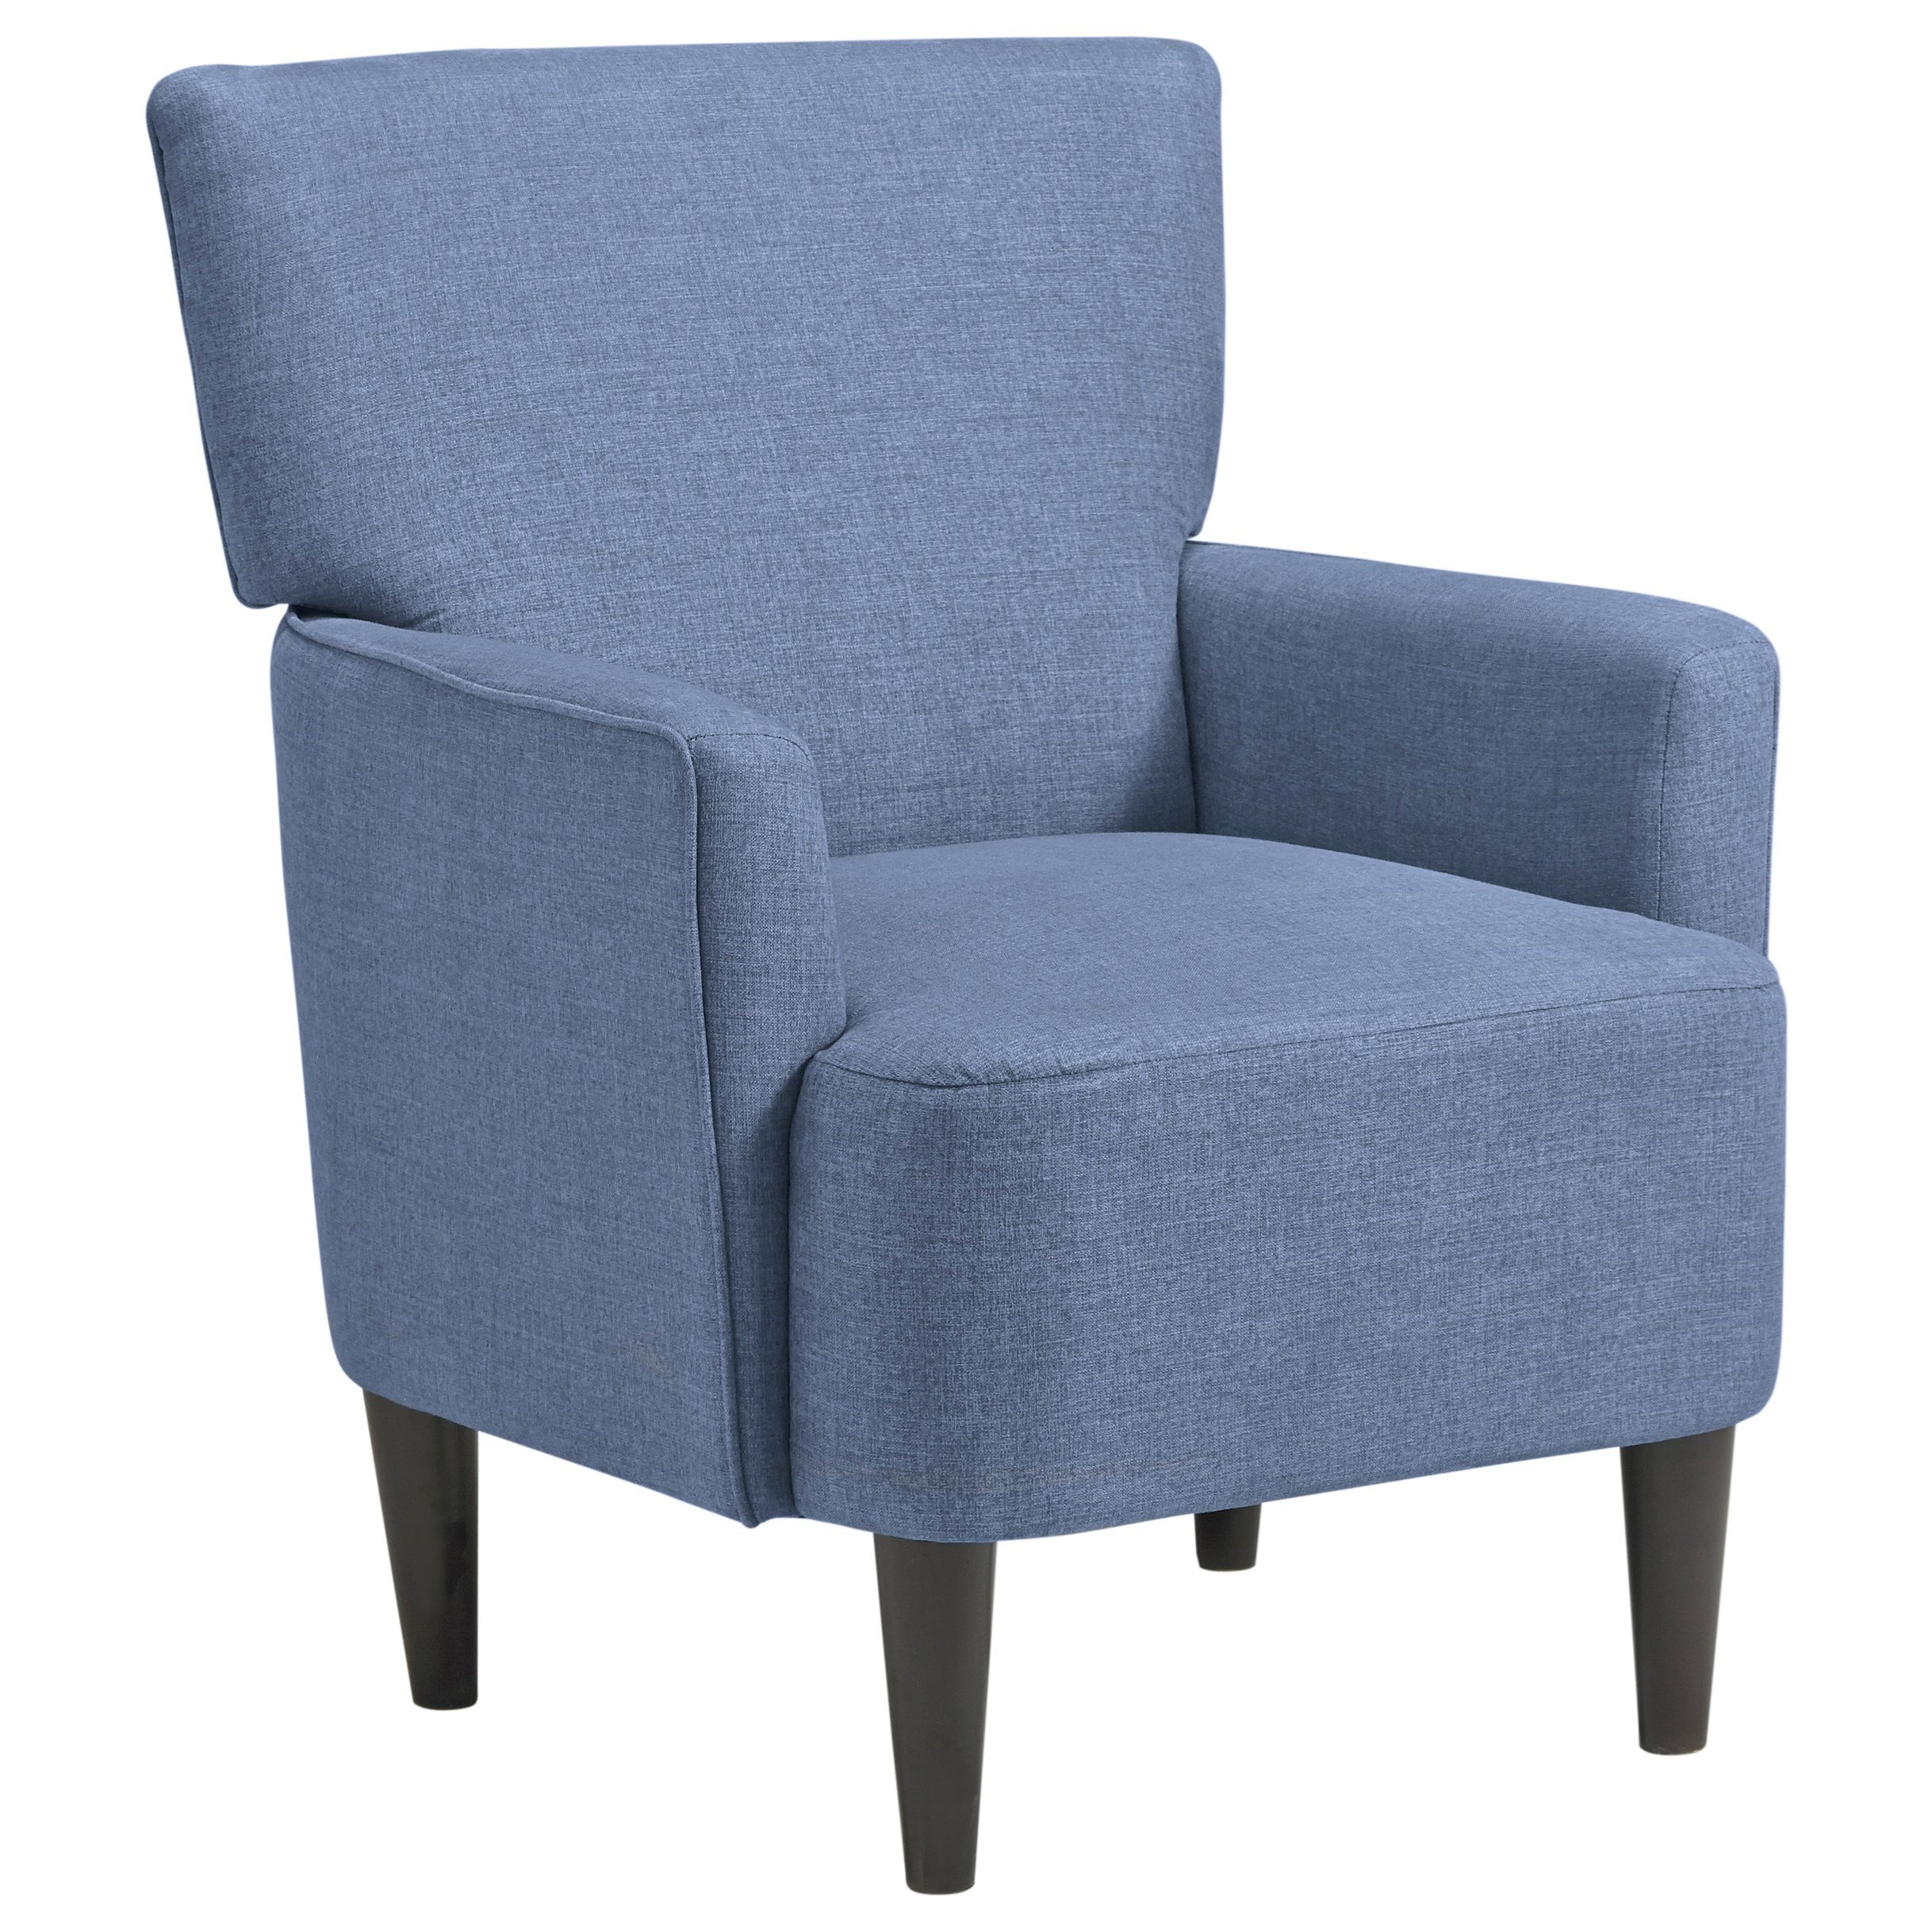 Hansridge Accent Chair by Ashley (Signature Design) at Johnny Janosik